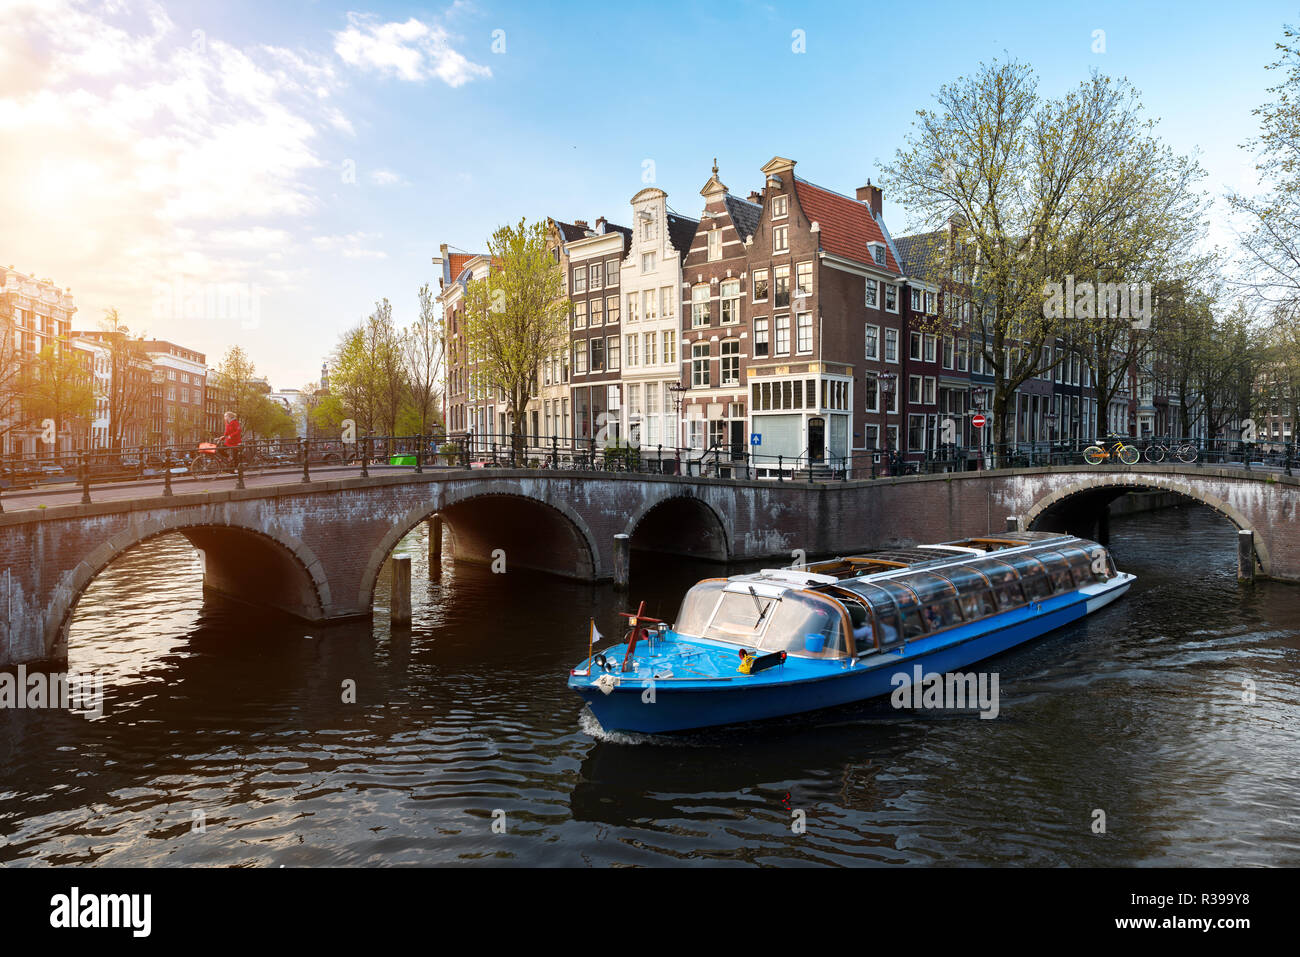 Amsterdam canal cruise ship with Netherlands traditional house in Amsterdam, Netherlands. - Stock Image